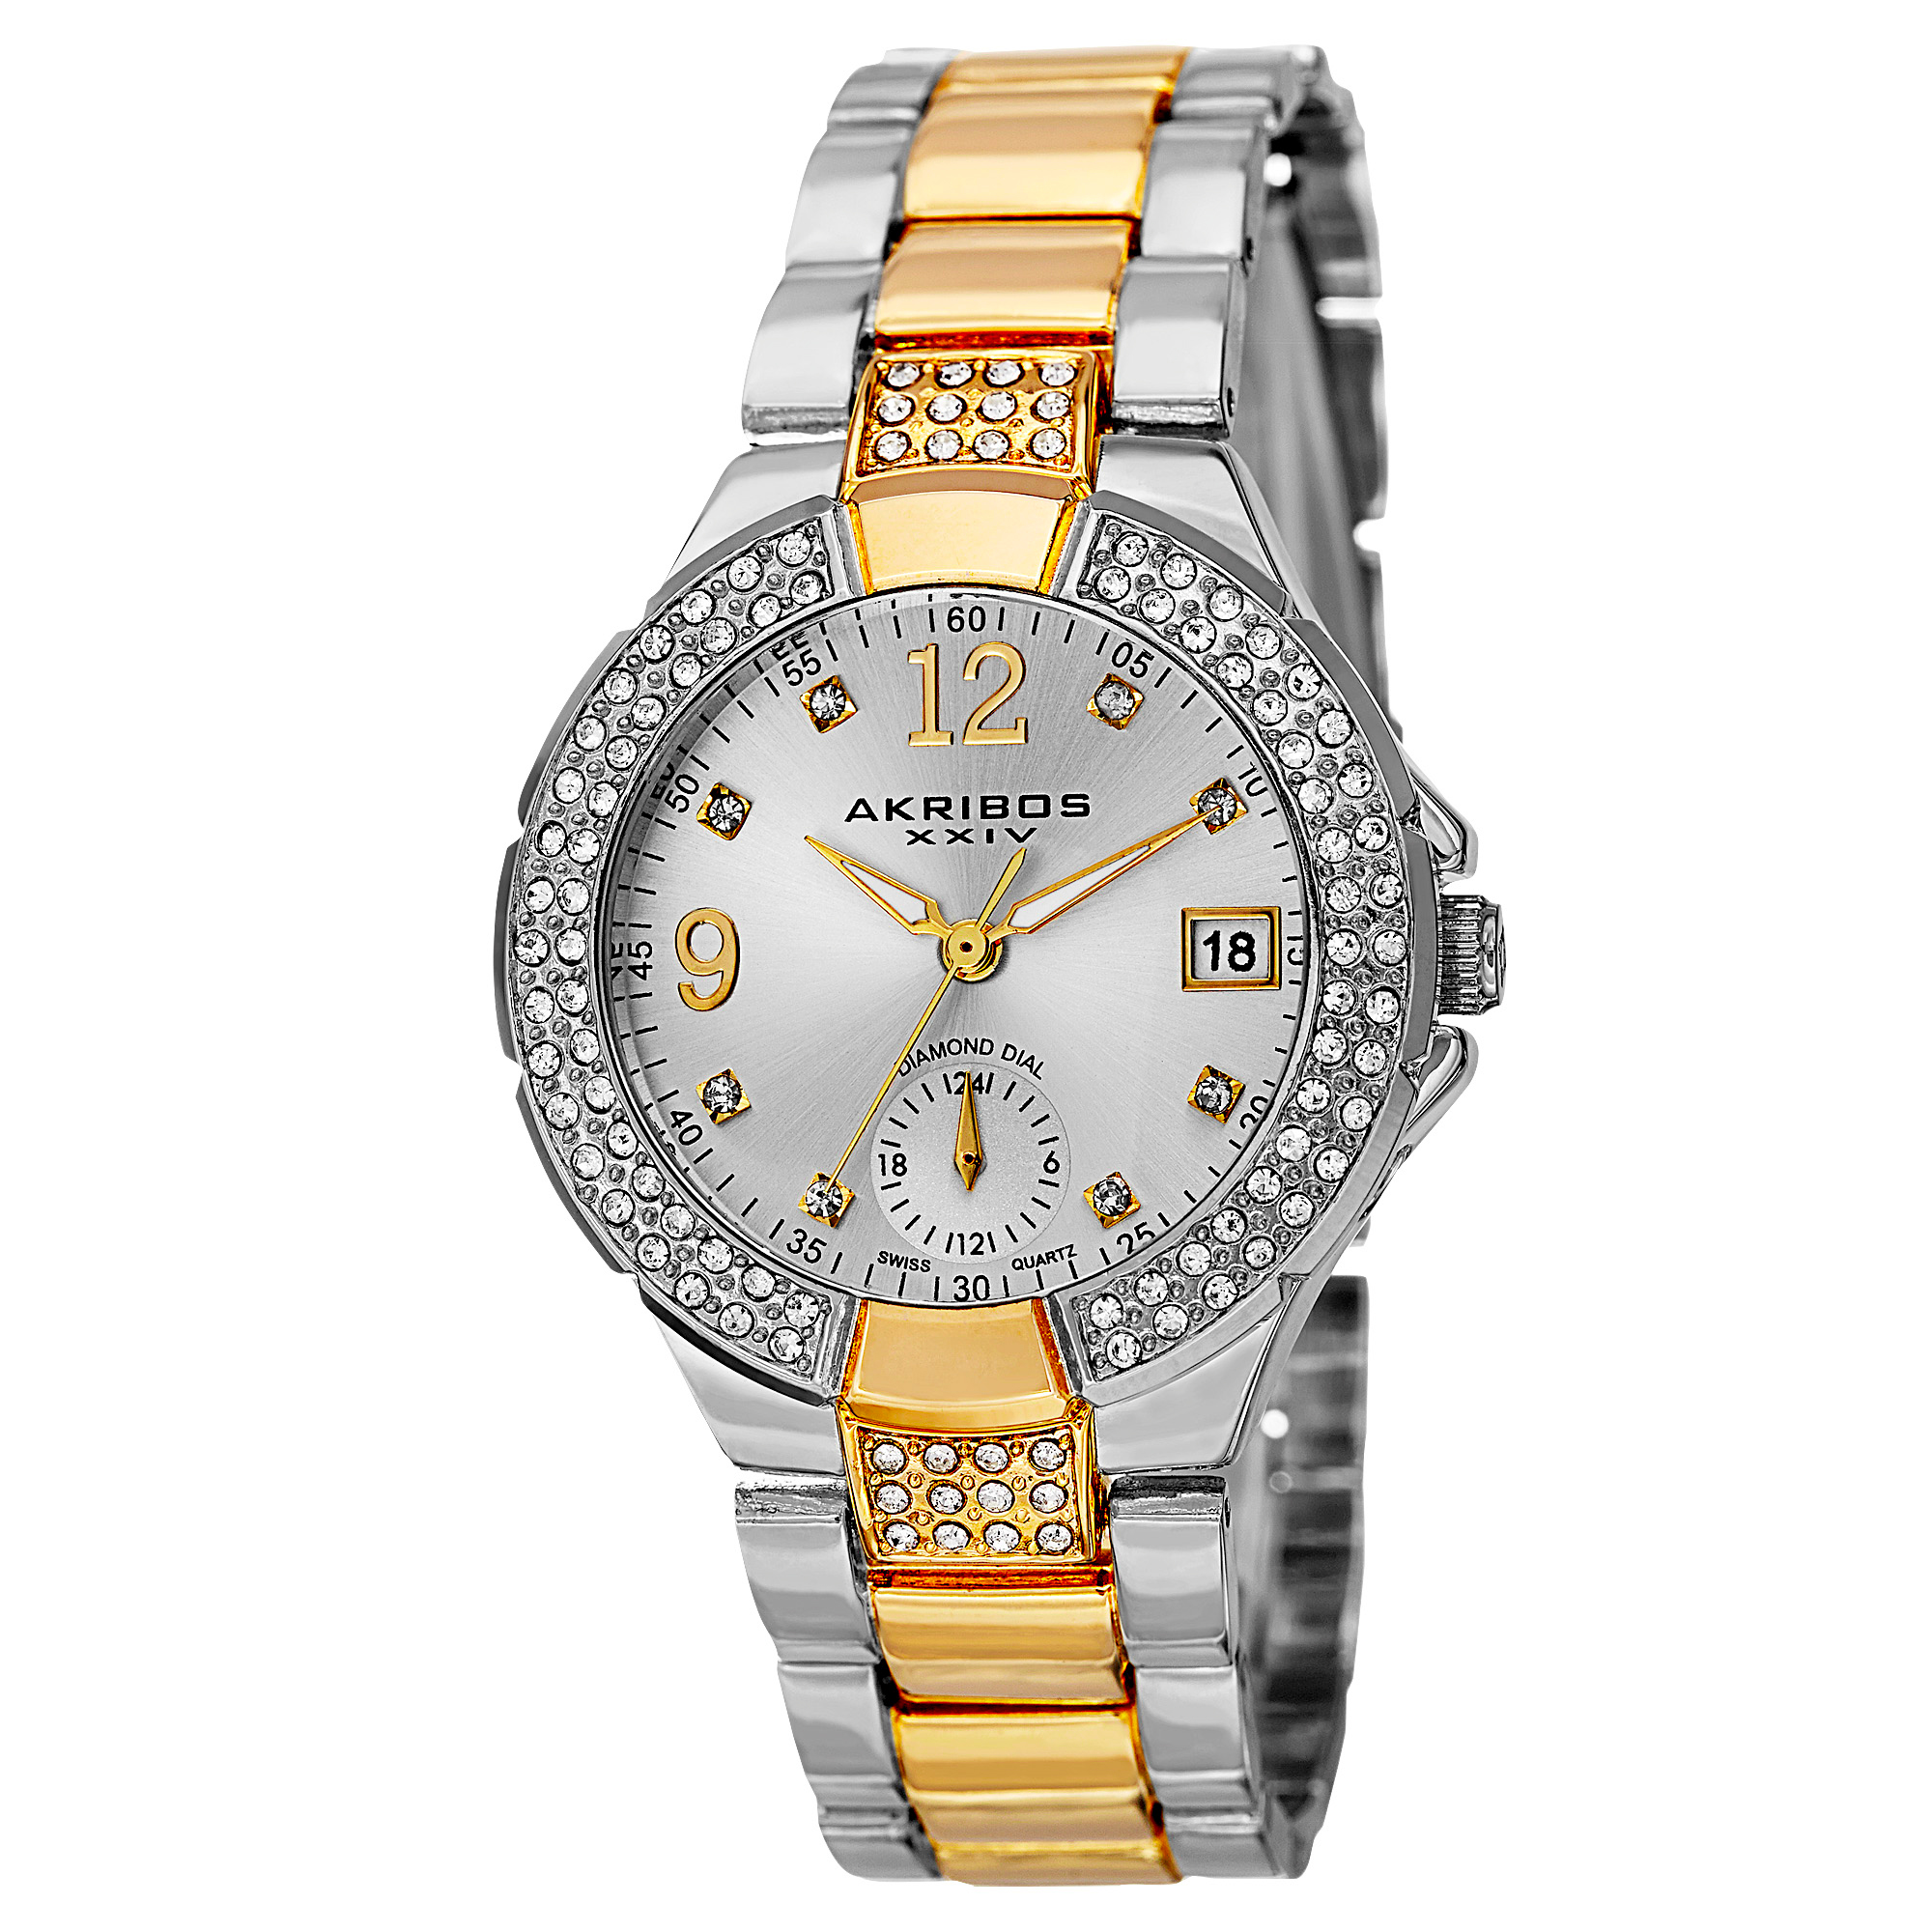 Akribos XXIV Women's Swiss Quartz Diamond Markers Dual Time Two-Tone Bracelet Watch